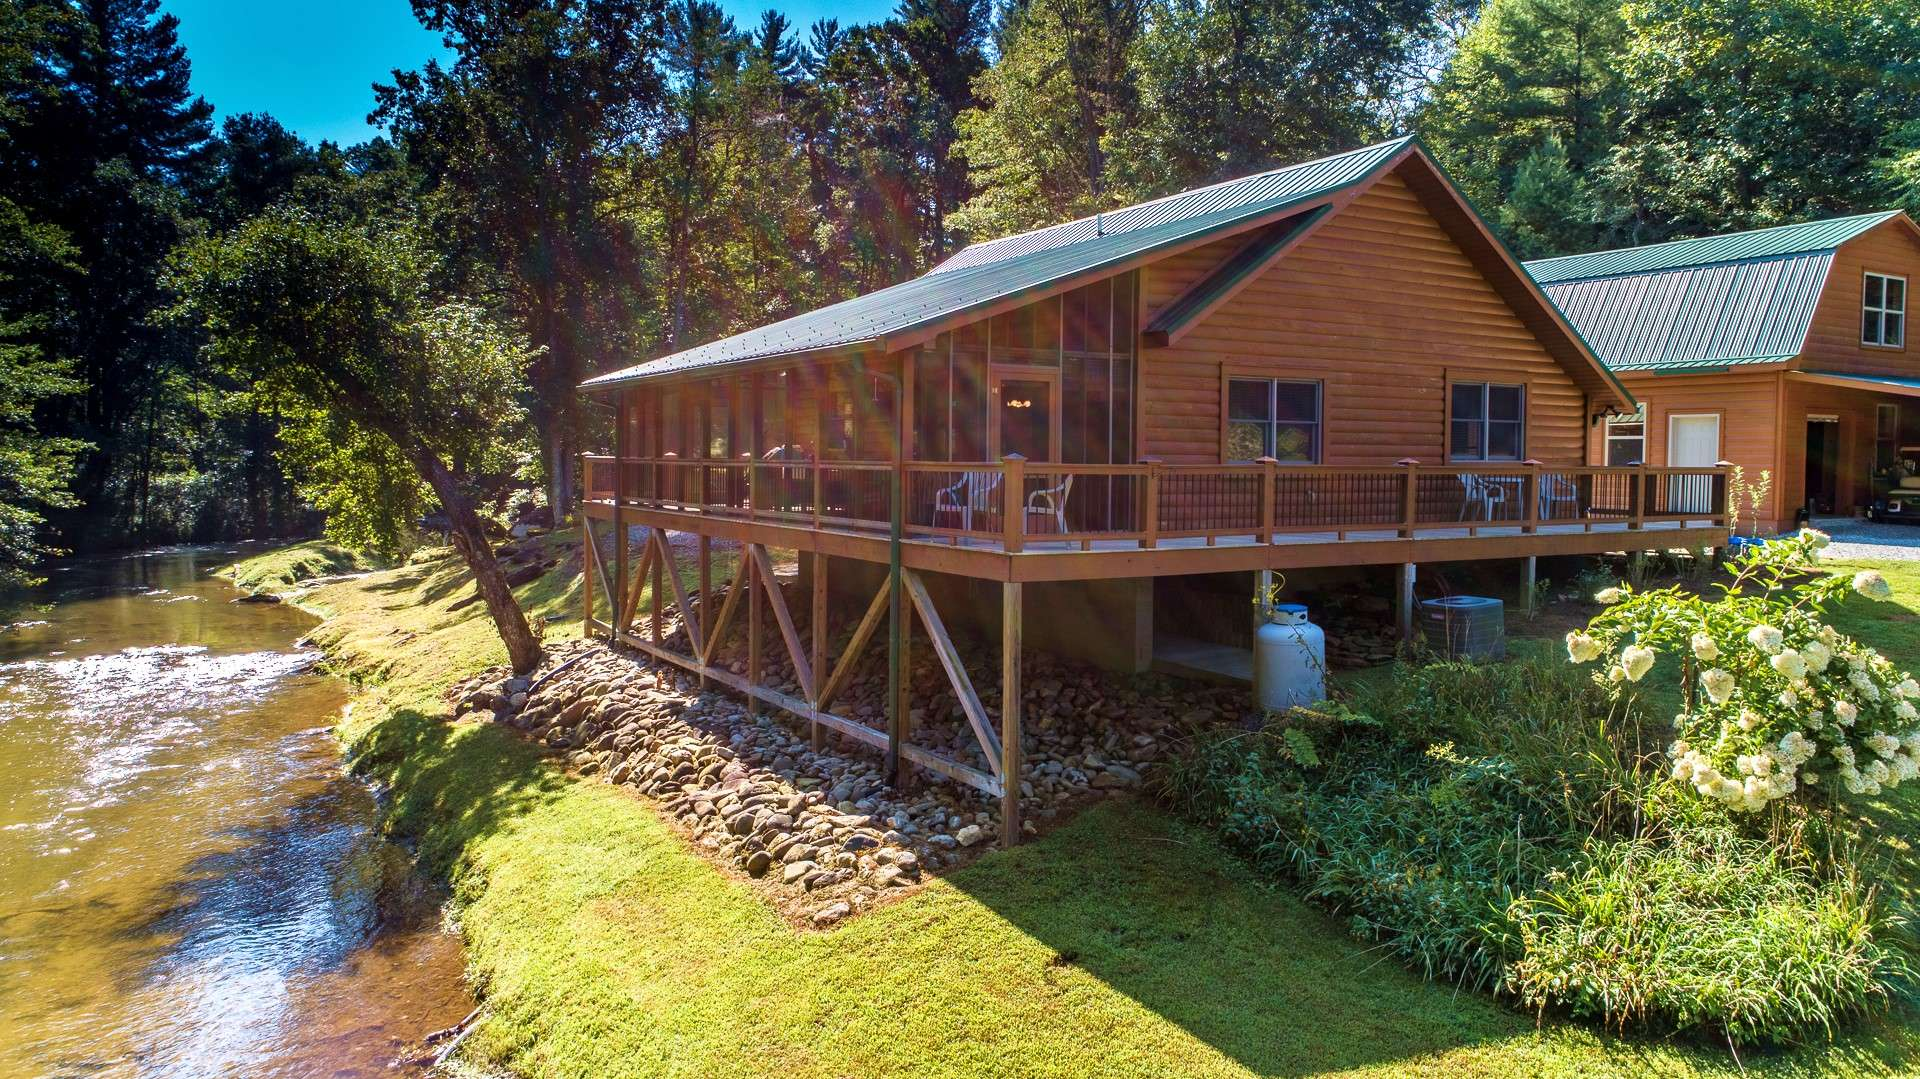 This truly unique property is a hidden gem in the North Carolina High Country.  Call for your private showing of listing O119.